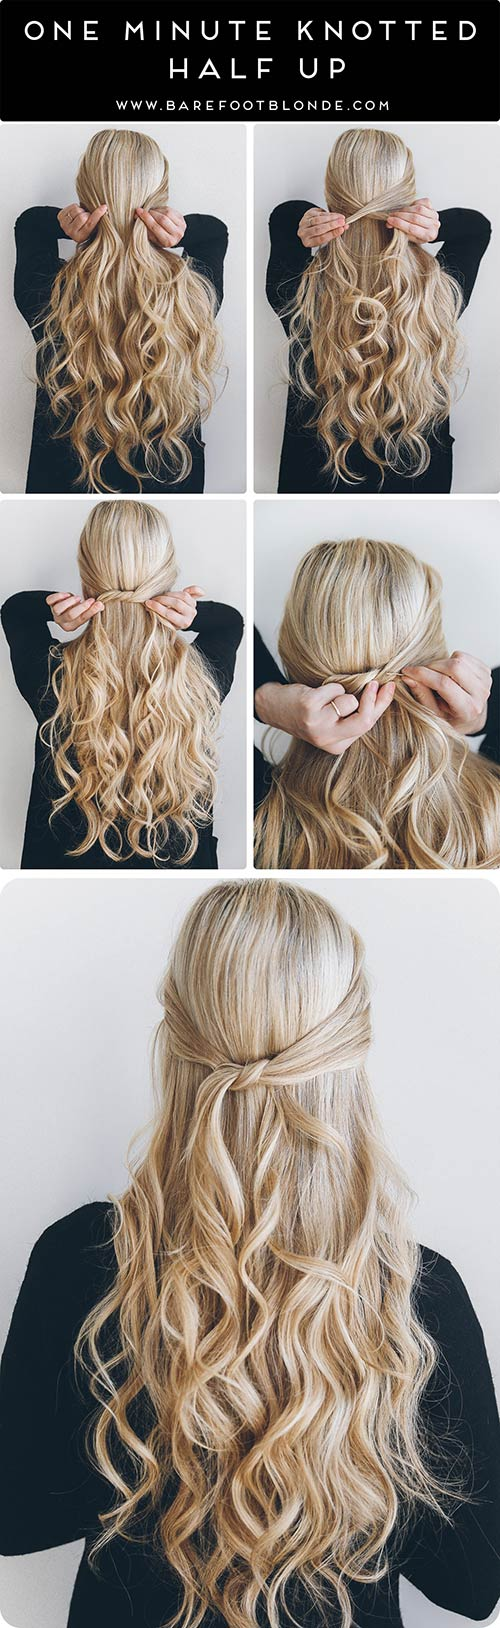 One-Minute-Knotted-Half-Up hairstyle